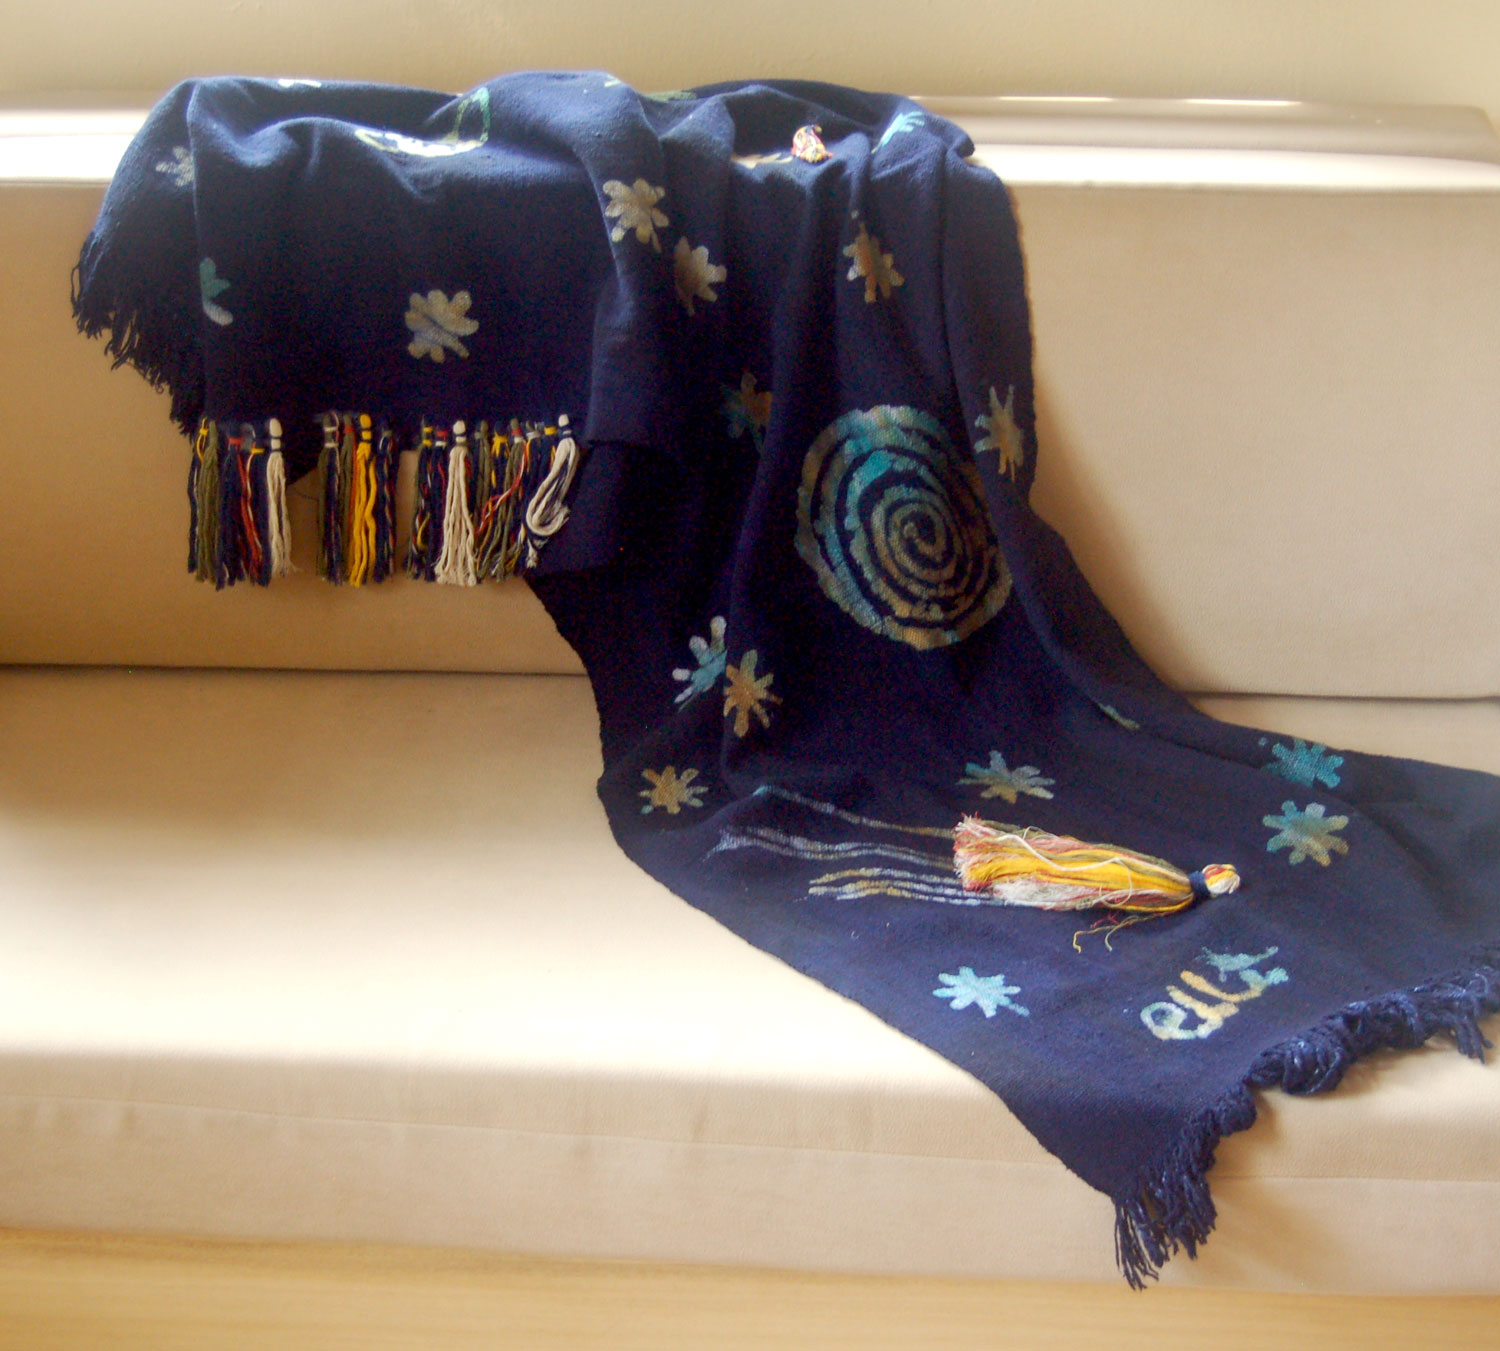 Playful Handspun Handwoven Cotton Throw – Cosmos